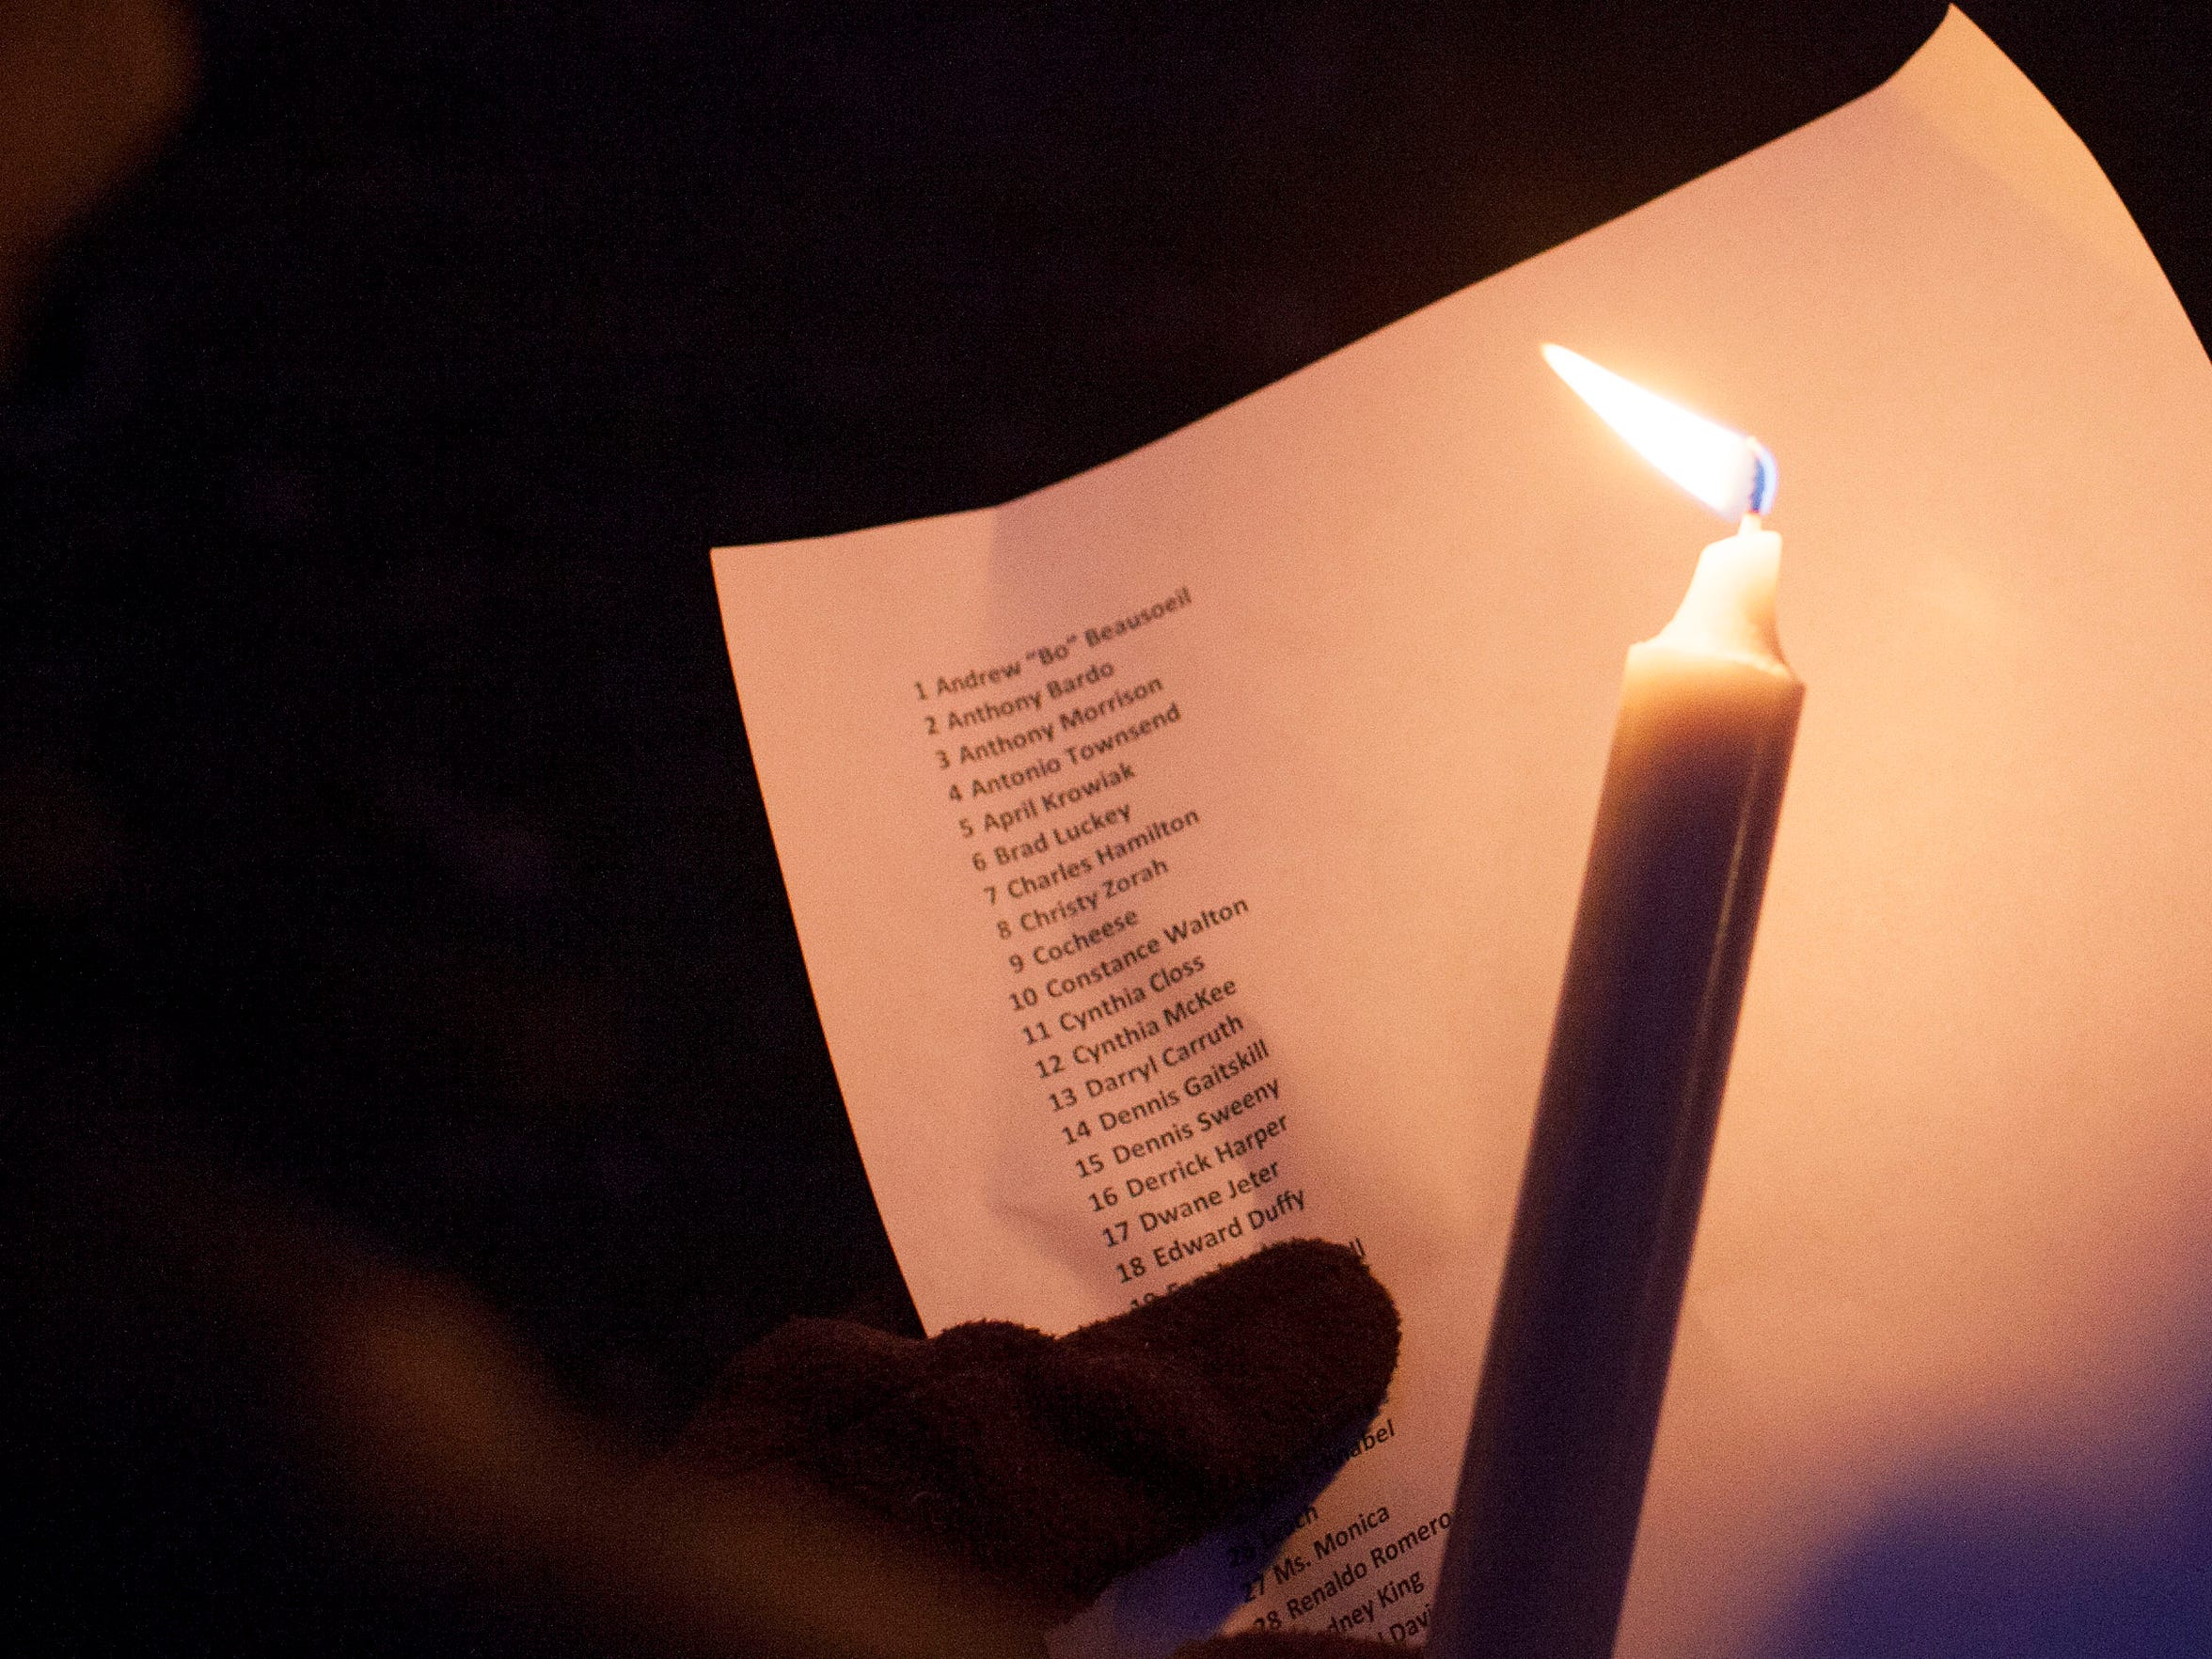 The list of homeless people who died in 2014 was read